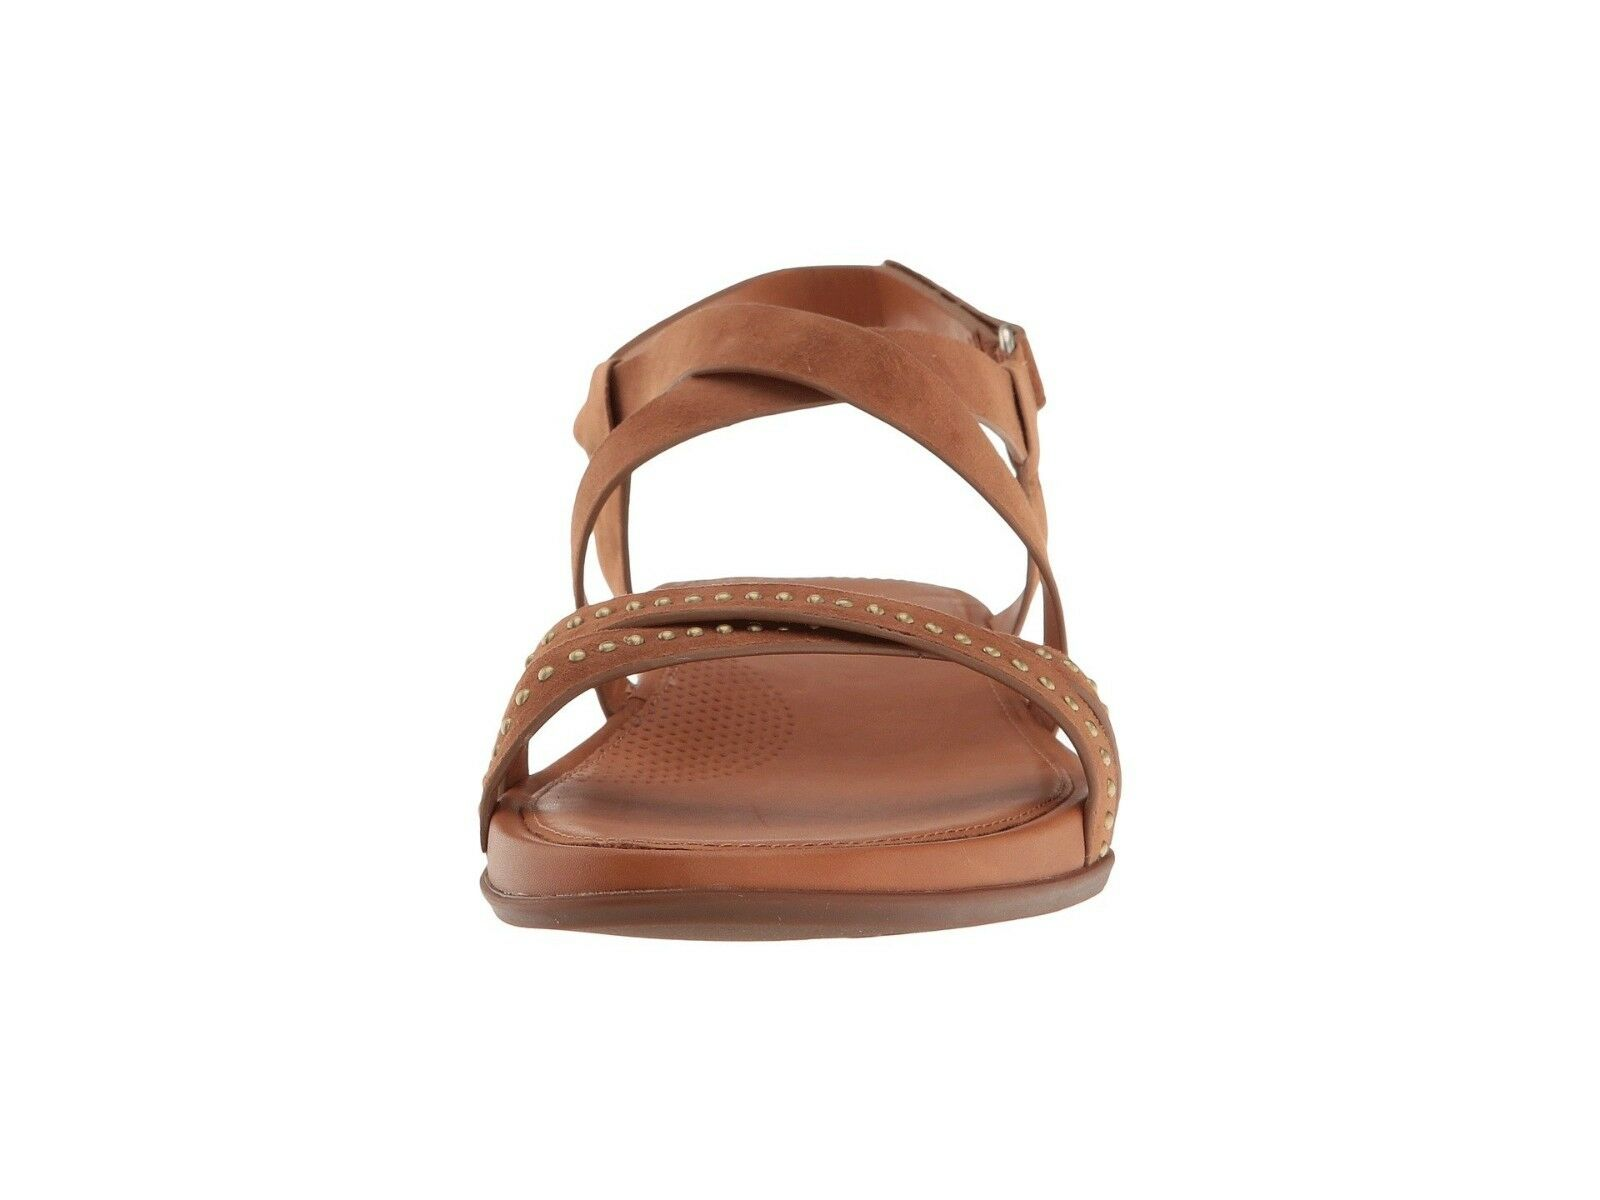 NEW FITFLOP Sz9US LUMY SANDALS CRISSCROSS W/STUDS ANKLE STRAPS SANDALS LUMY SUEDE LEATHER TAN 725b71